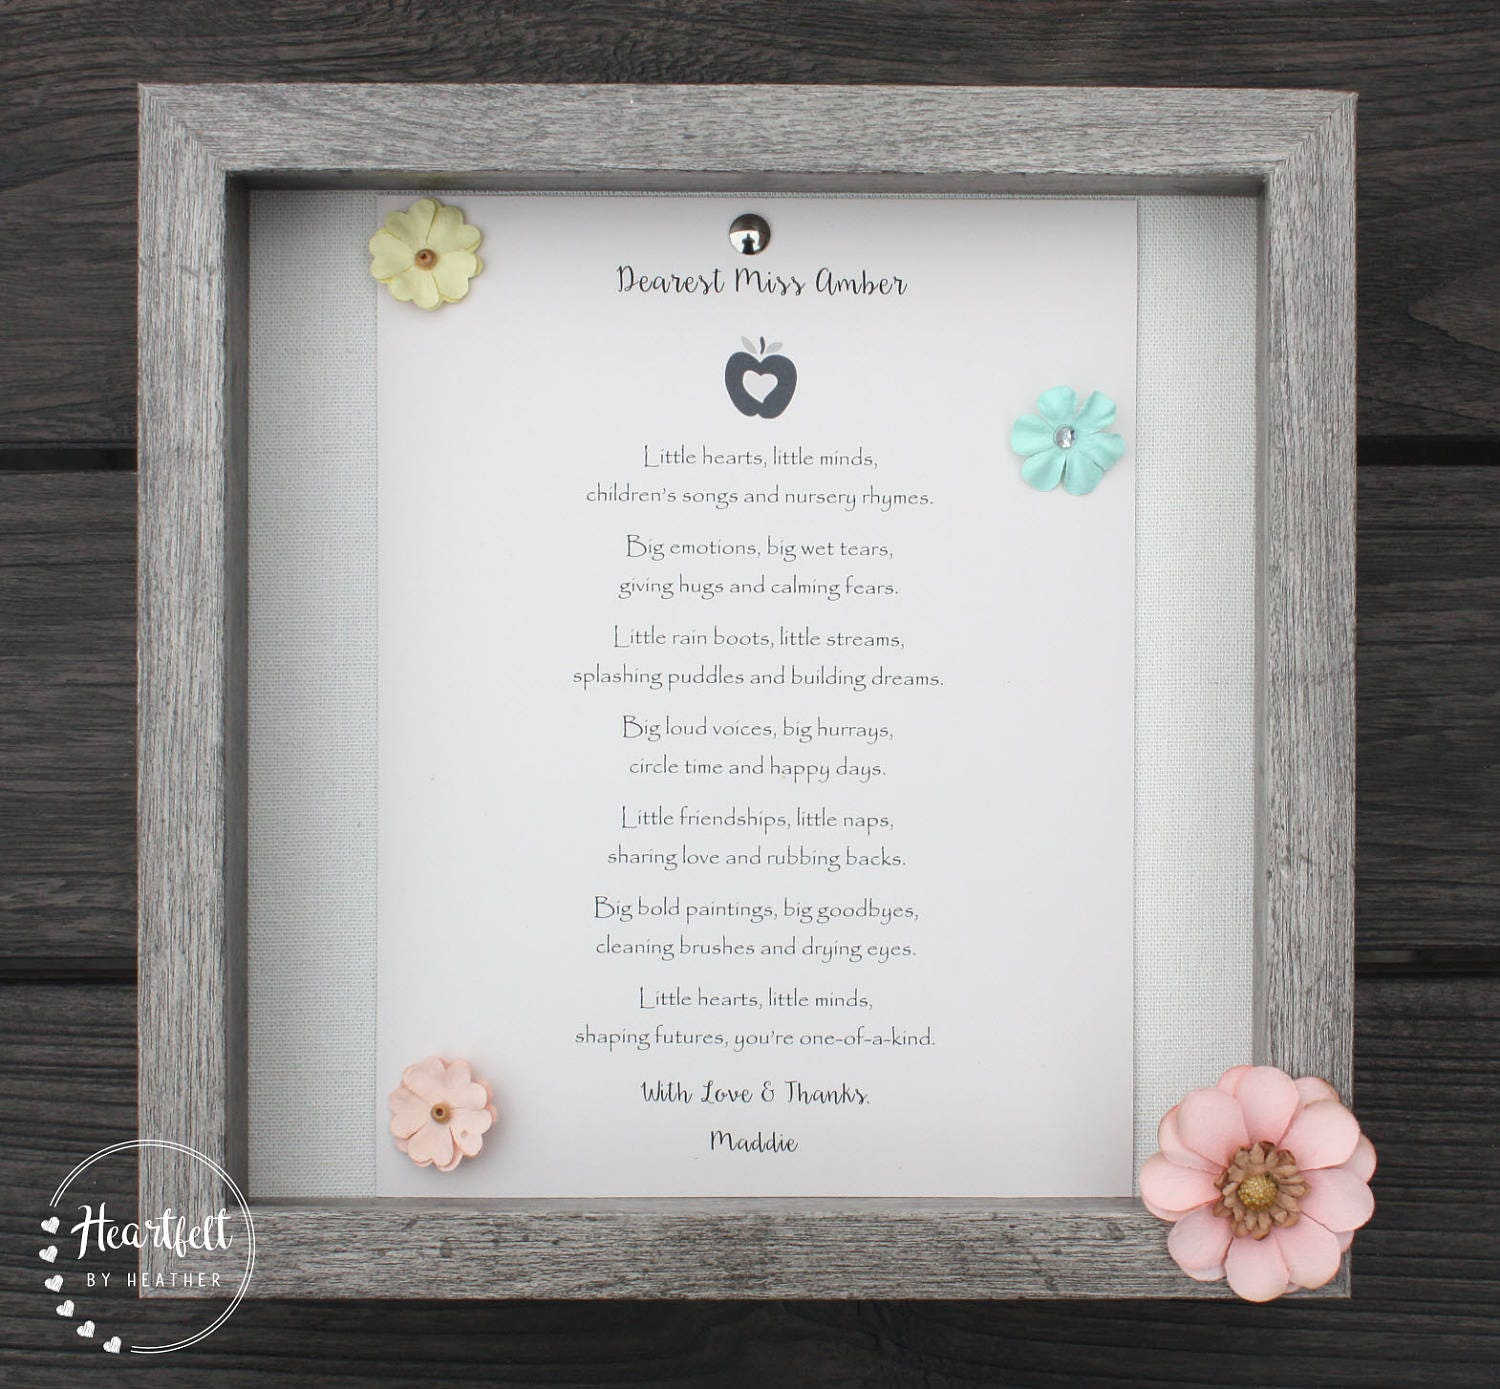 Preschool Teacher Thank You Gift Daycare Provider Poem ...